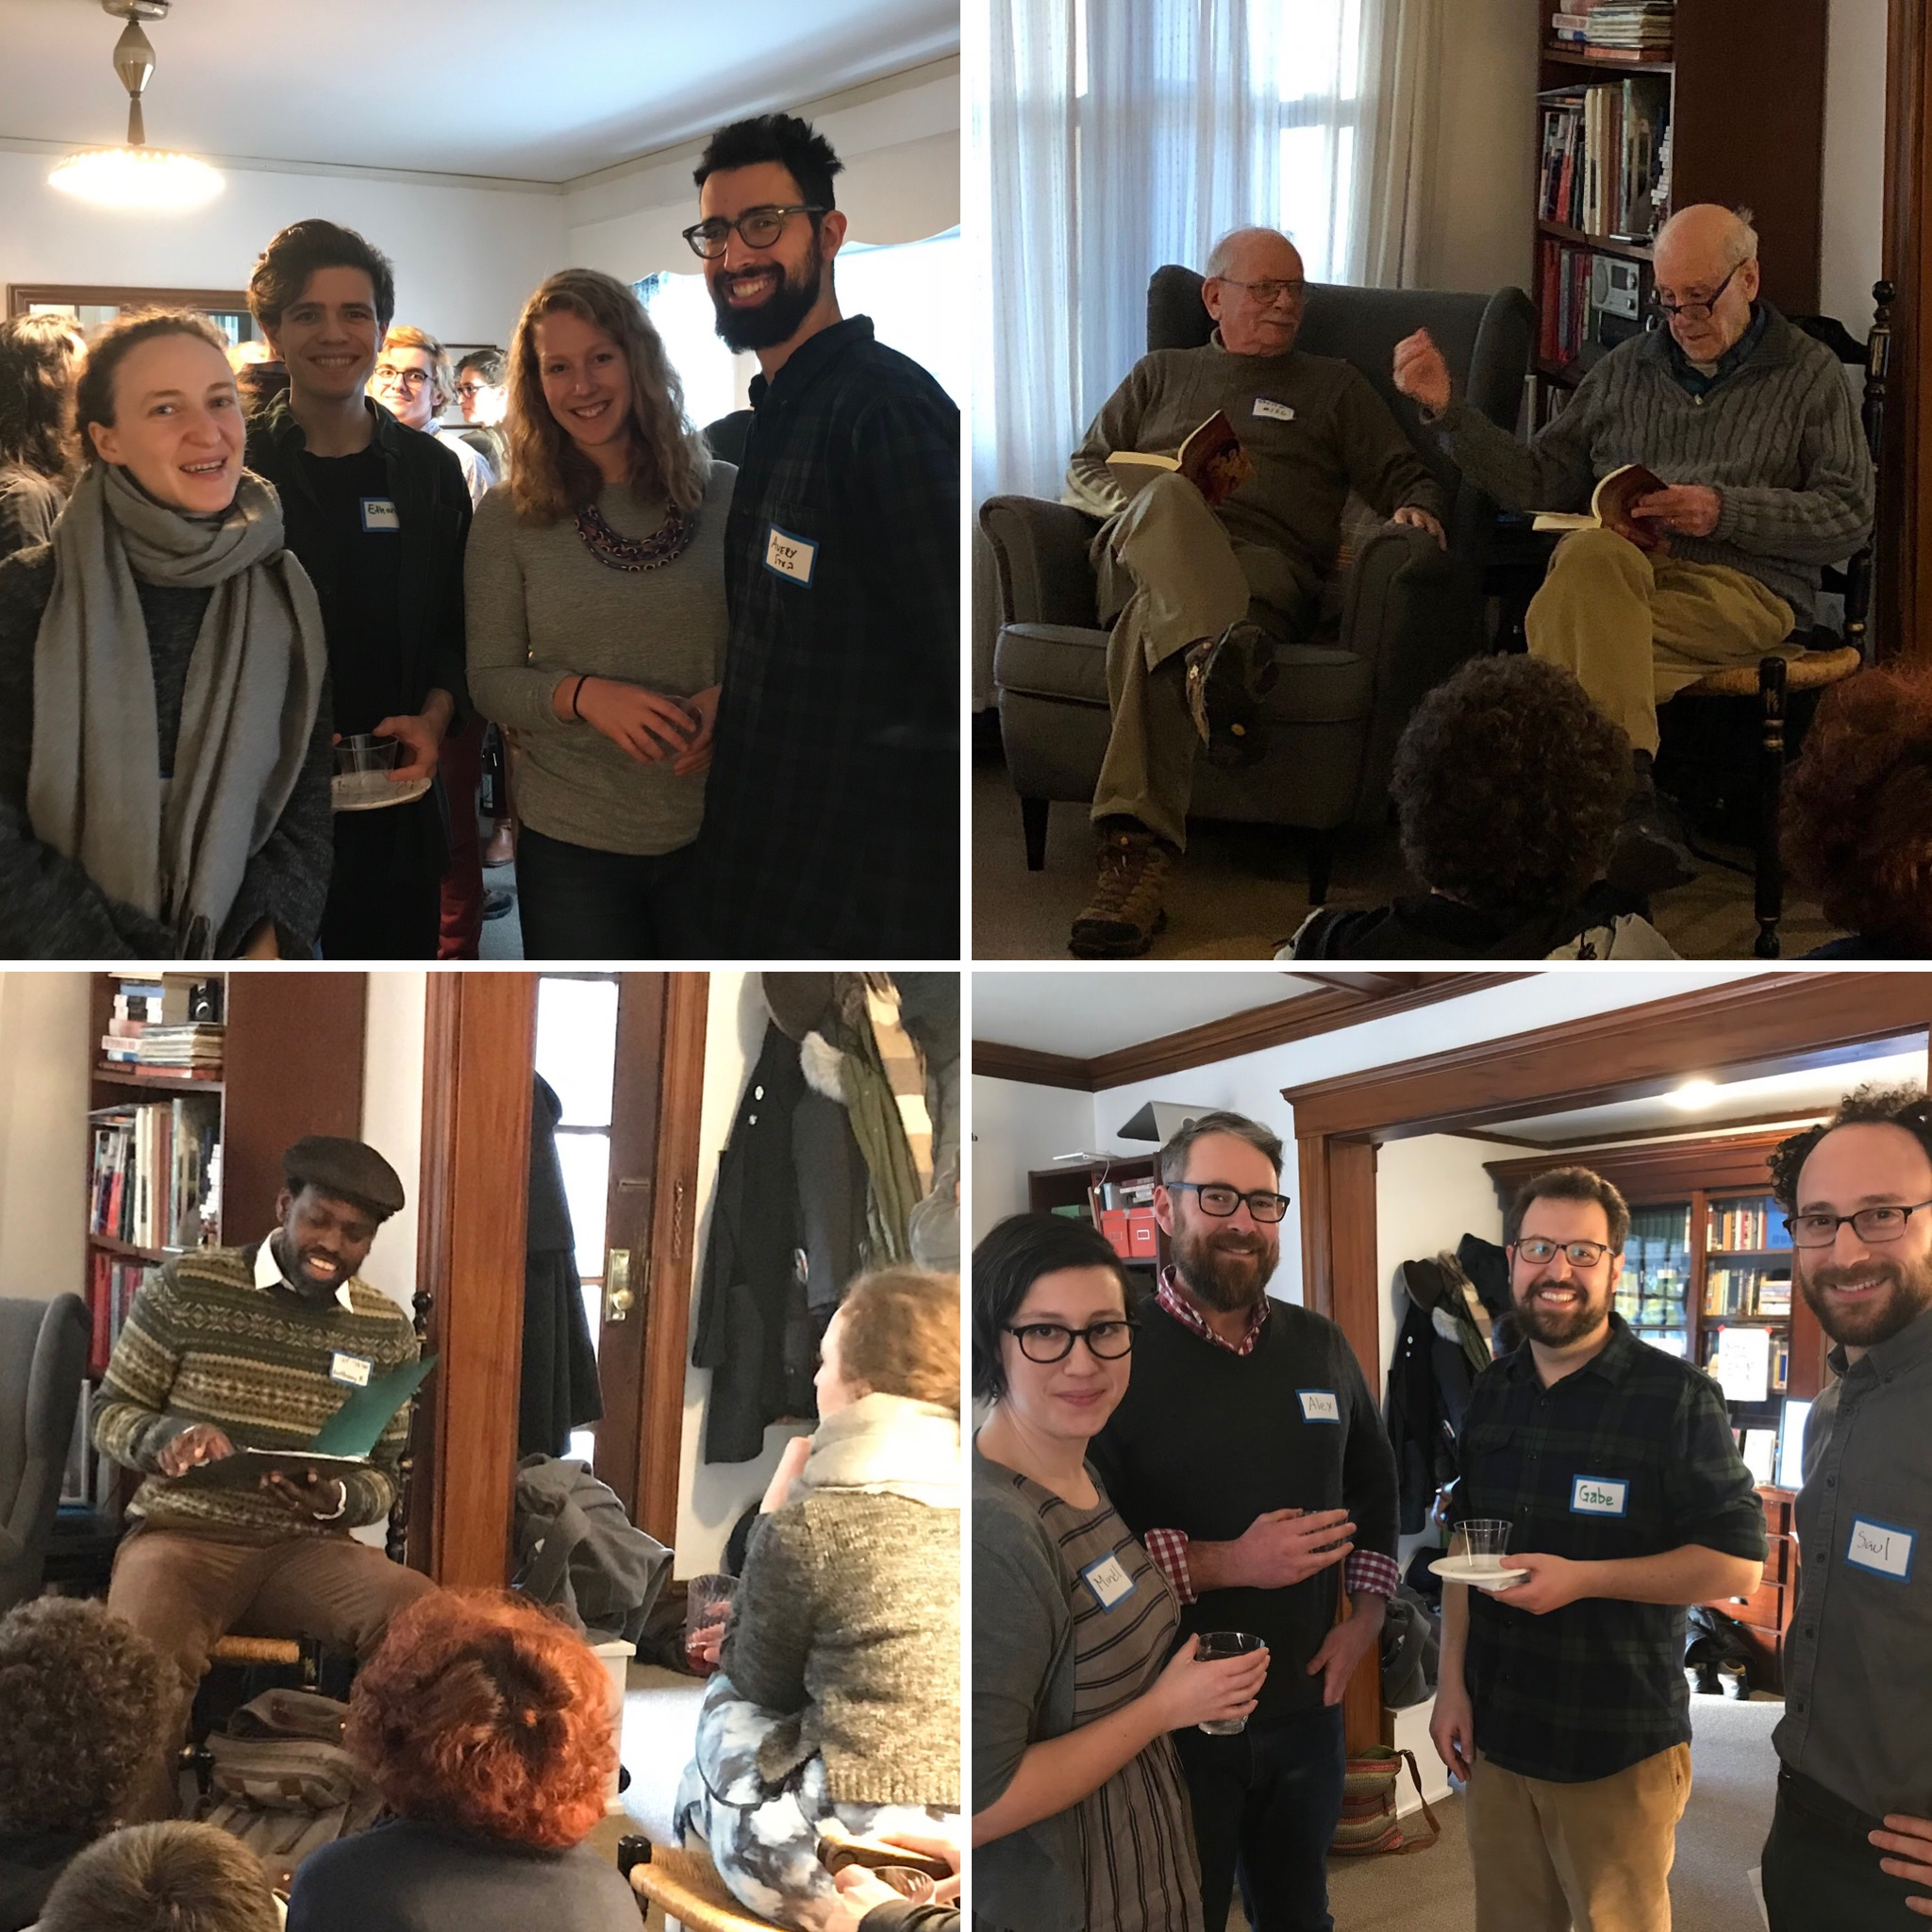 <p>Spotted at our Belmont party, clockwise from top left: two mavens of Yiddish song, Reyna Schaechter and Leah Reis-Dennis; Solon Beinfeld and Richard J. Fein read Sutzkever; editors Madeleine Cohen and Saul Zaritt work on their shmooze; and Anthony Russell performs songs from his new&nbsp;album. </p>